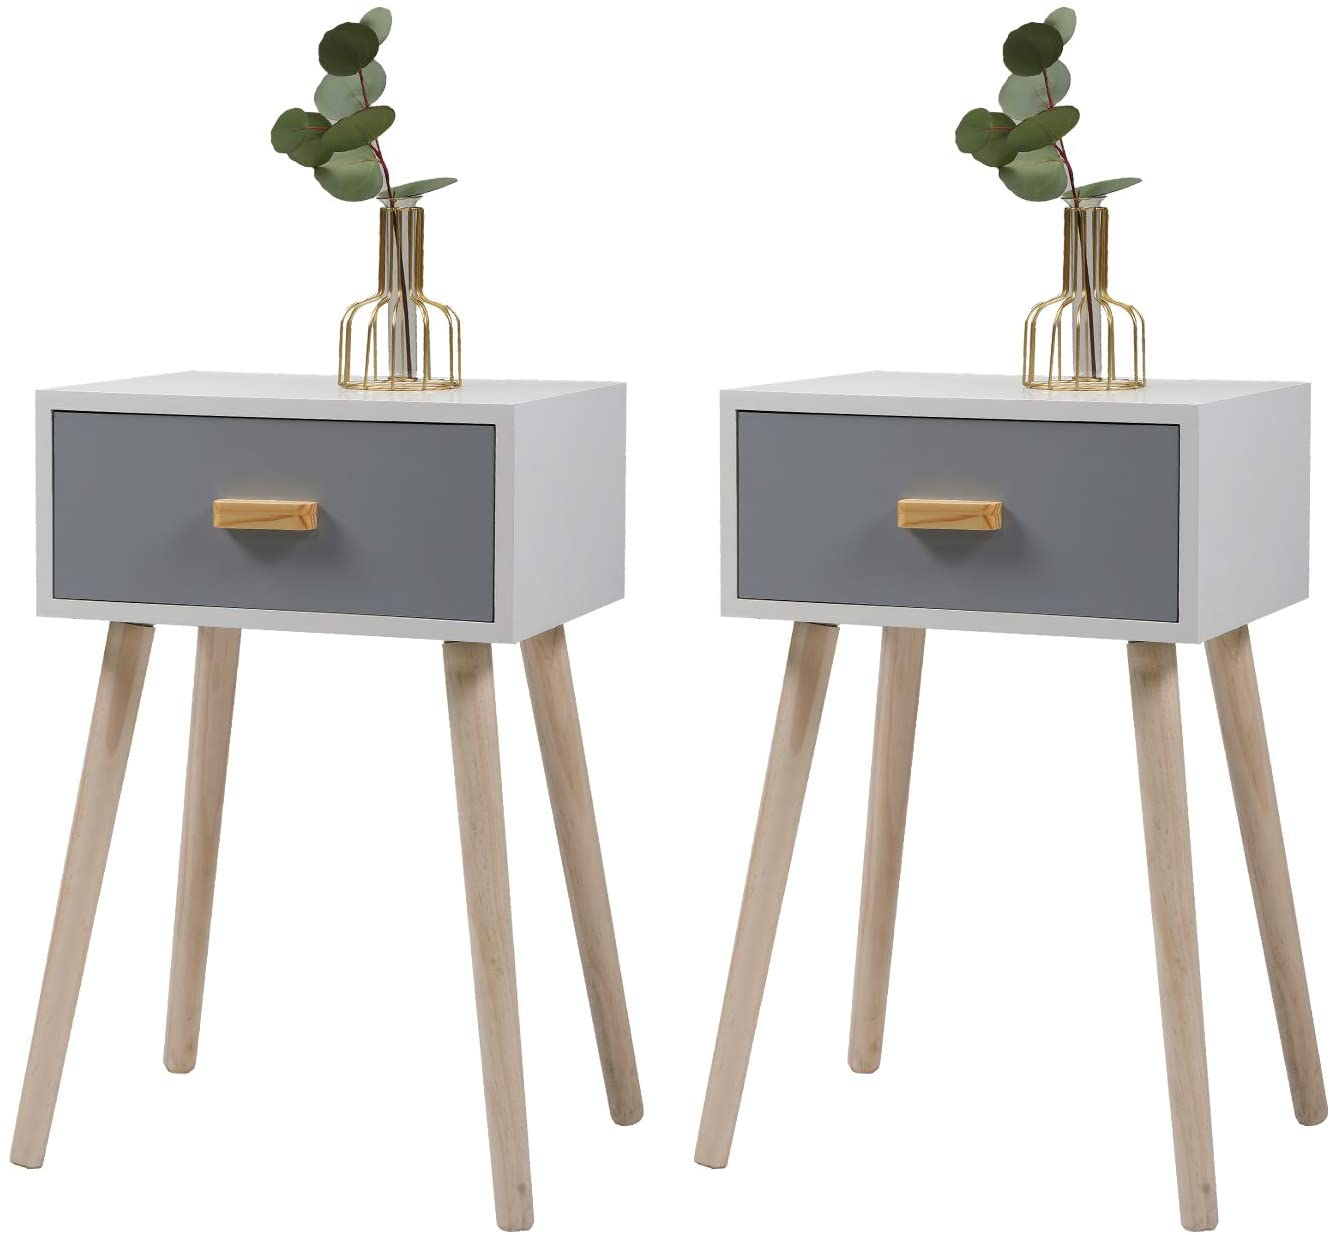 JAXPETY Set of 2 Nightstand w/Storage Drawer and Solid Wood Legs, Mid-Century Bedside Table for Bedroom Living Room Home Furniture, White + Silver Blue Pearl